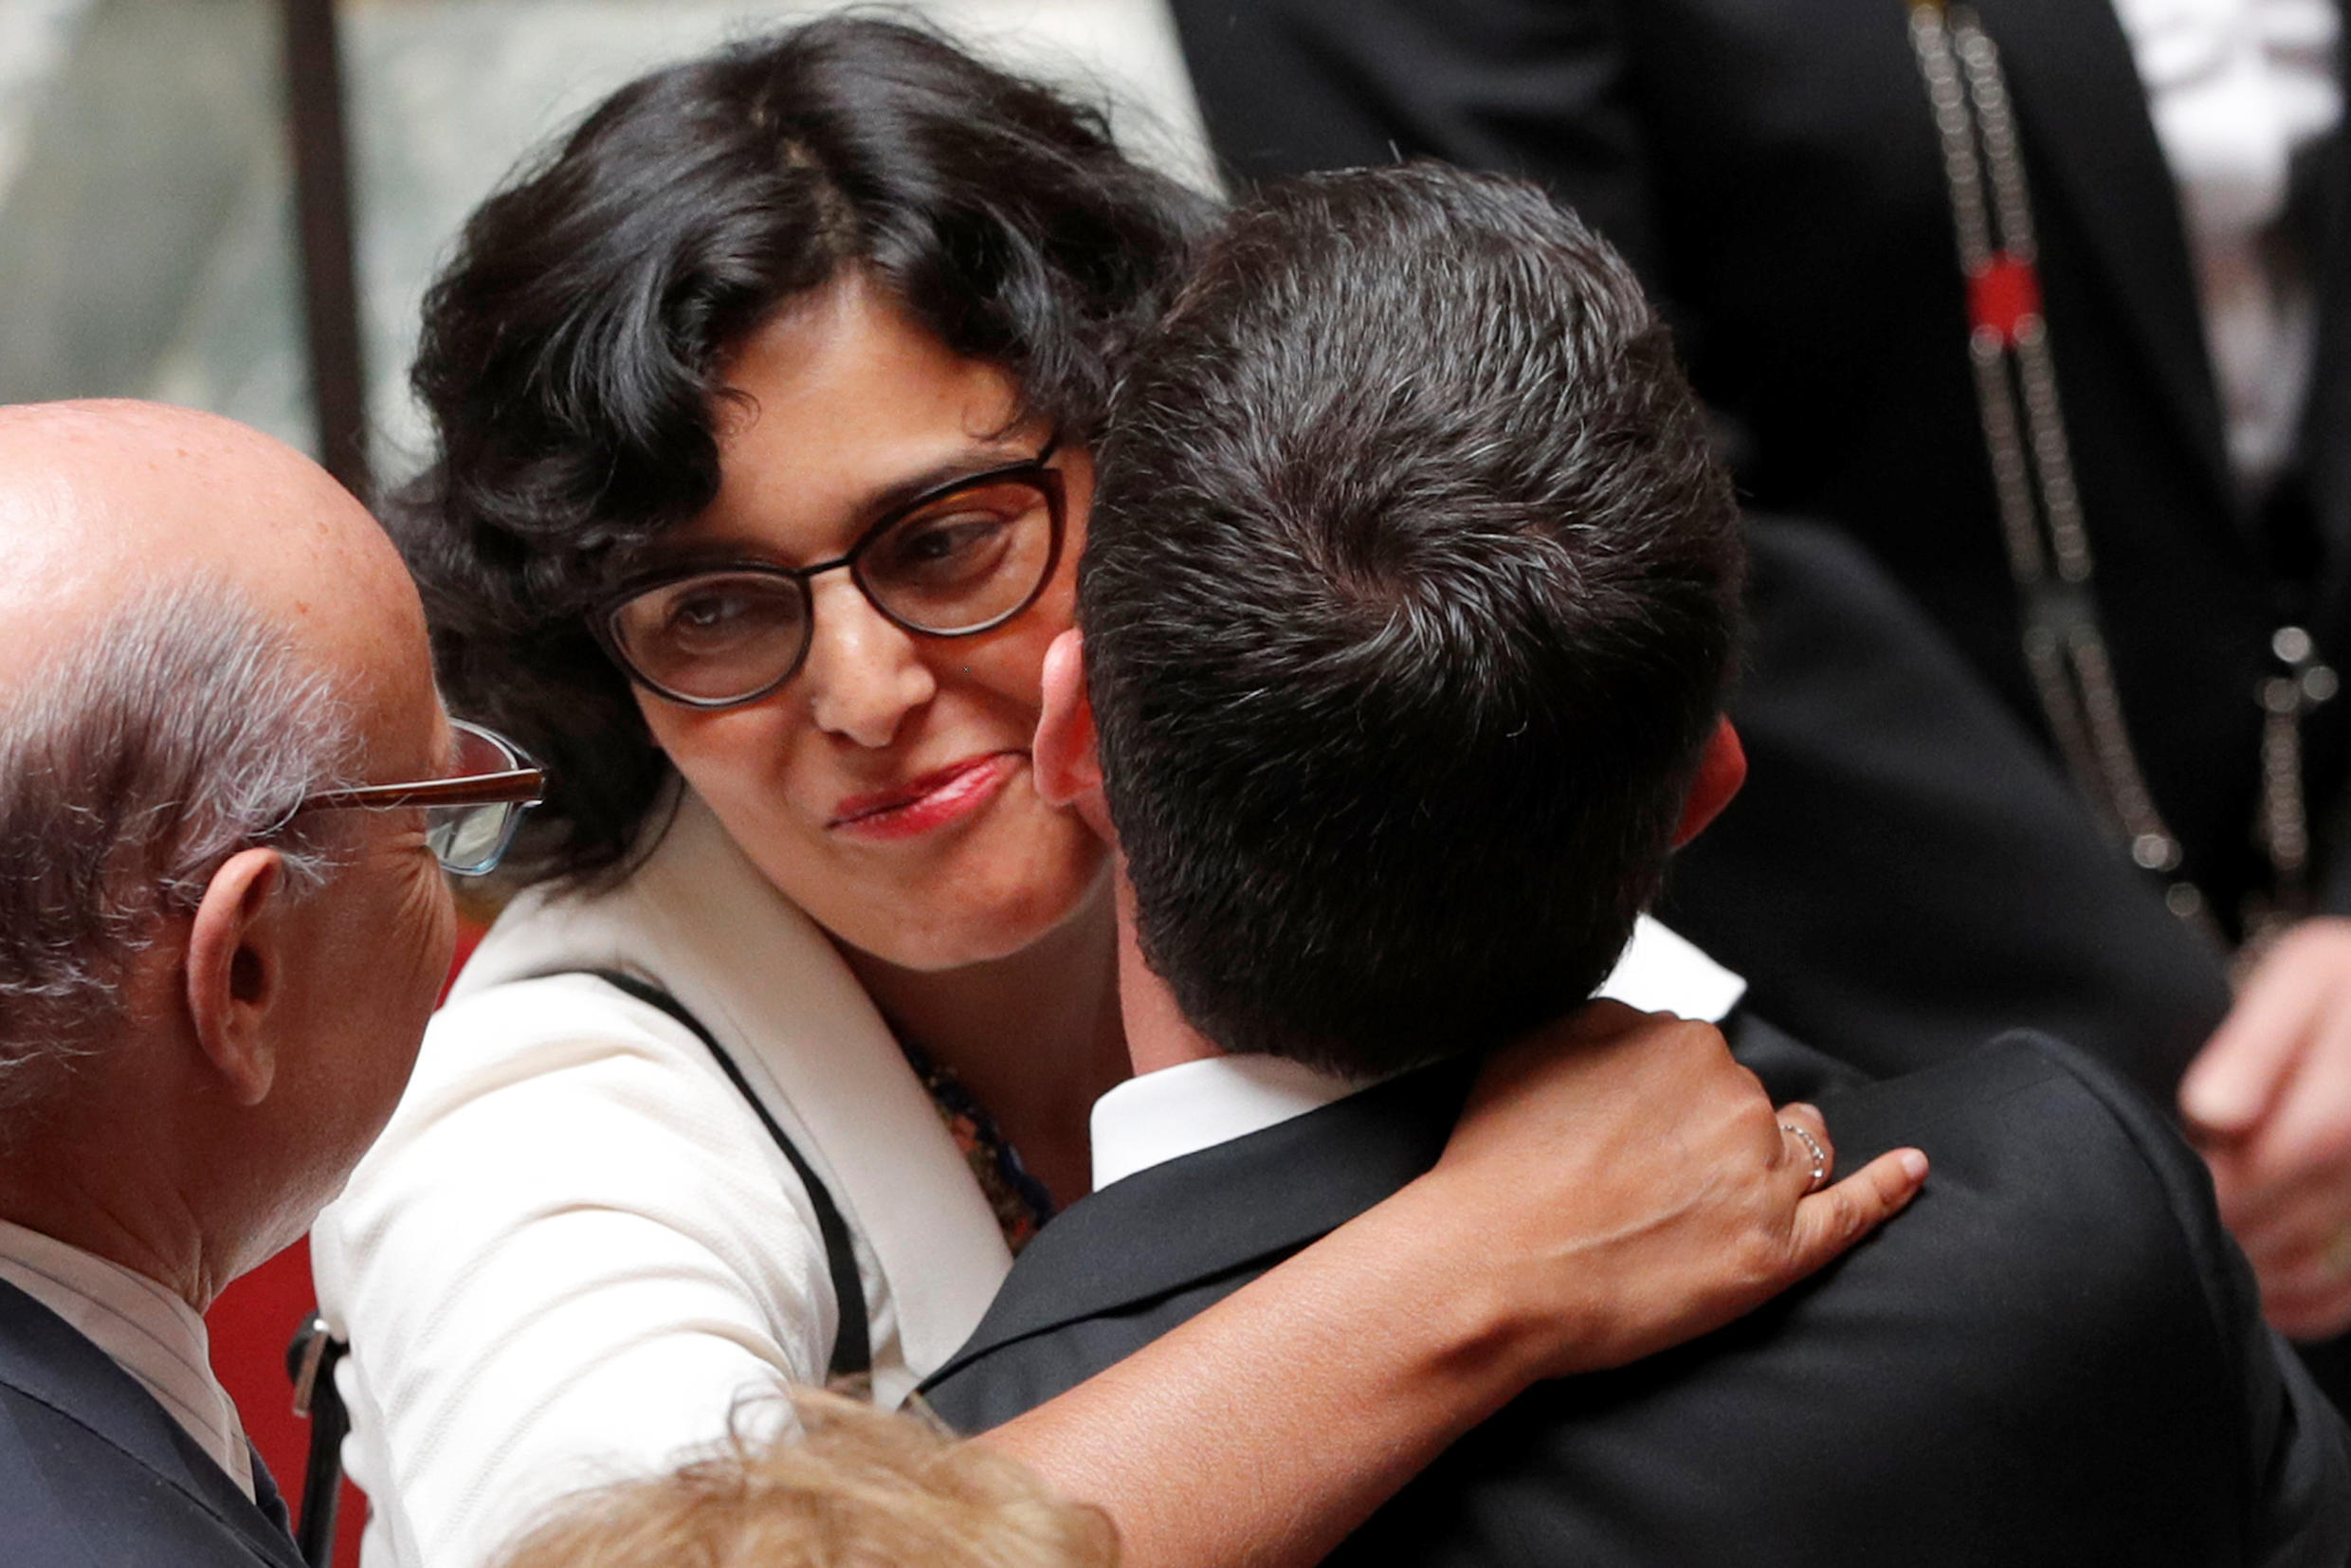 French Prime Minister Manuel Valls (R) kisses Labour Minister Myriam El Khomri (C) after forcing the labour law through parliament